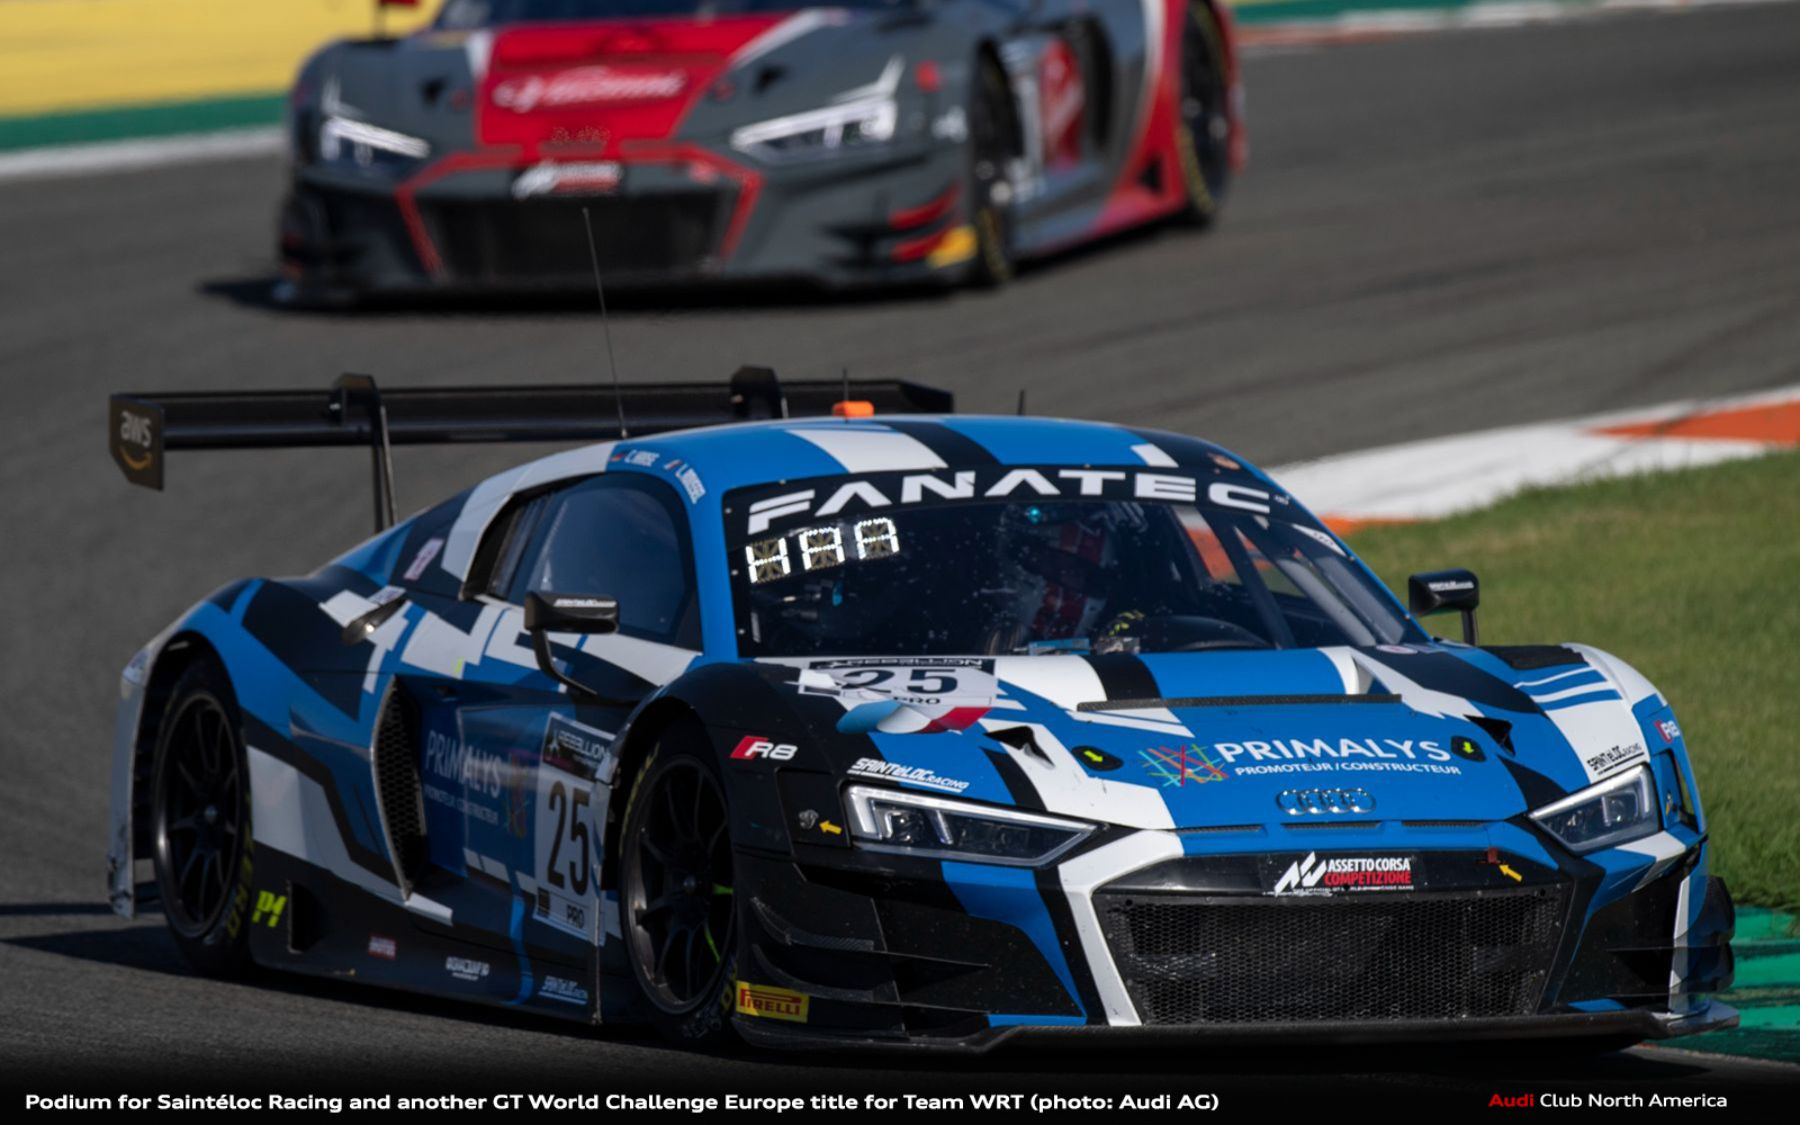 Podium for Saintéloc Racing and Another GT World Challenge Europe Title for Team WRT